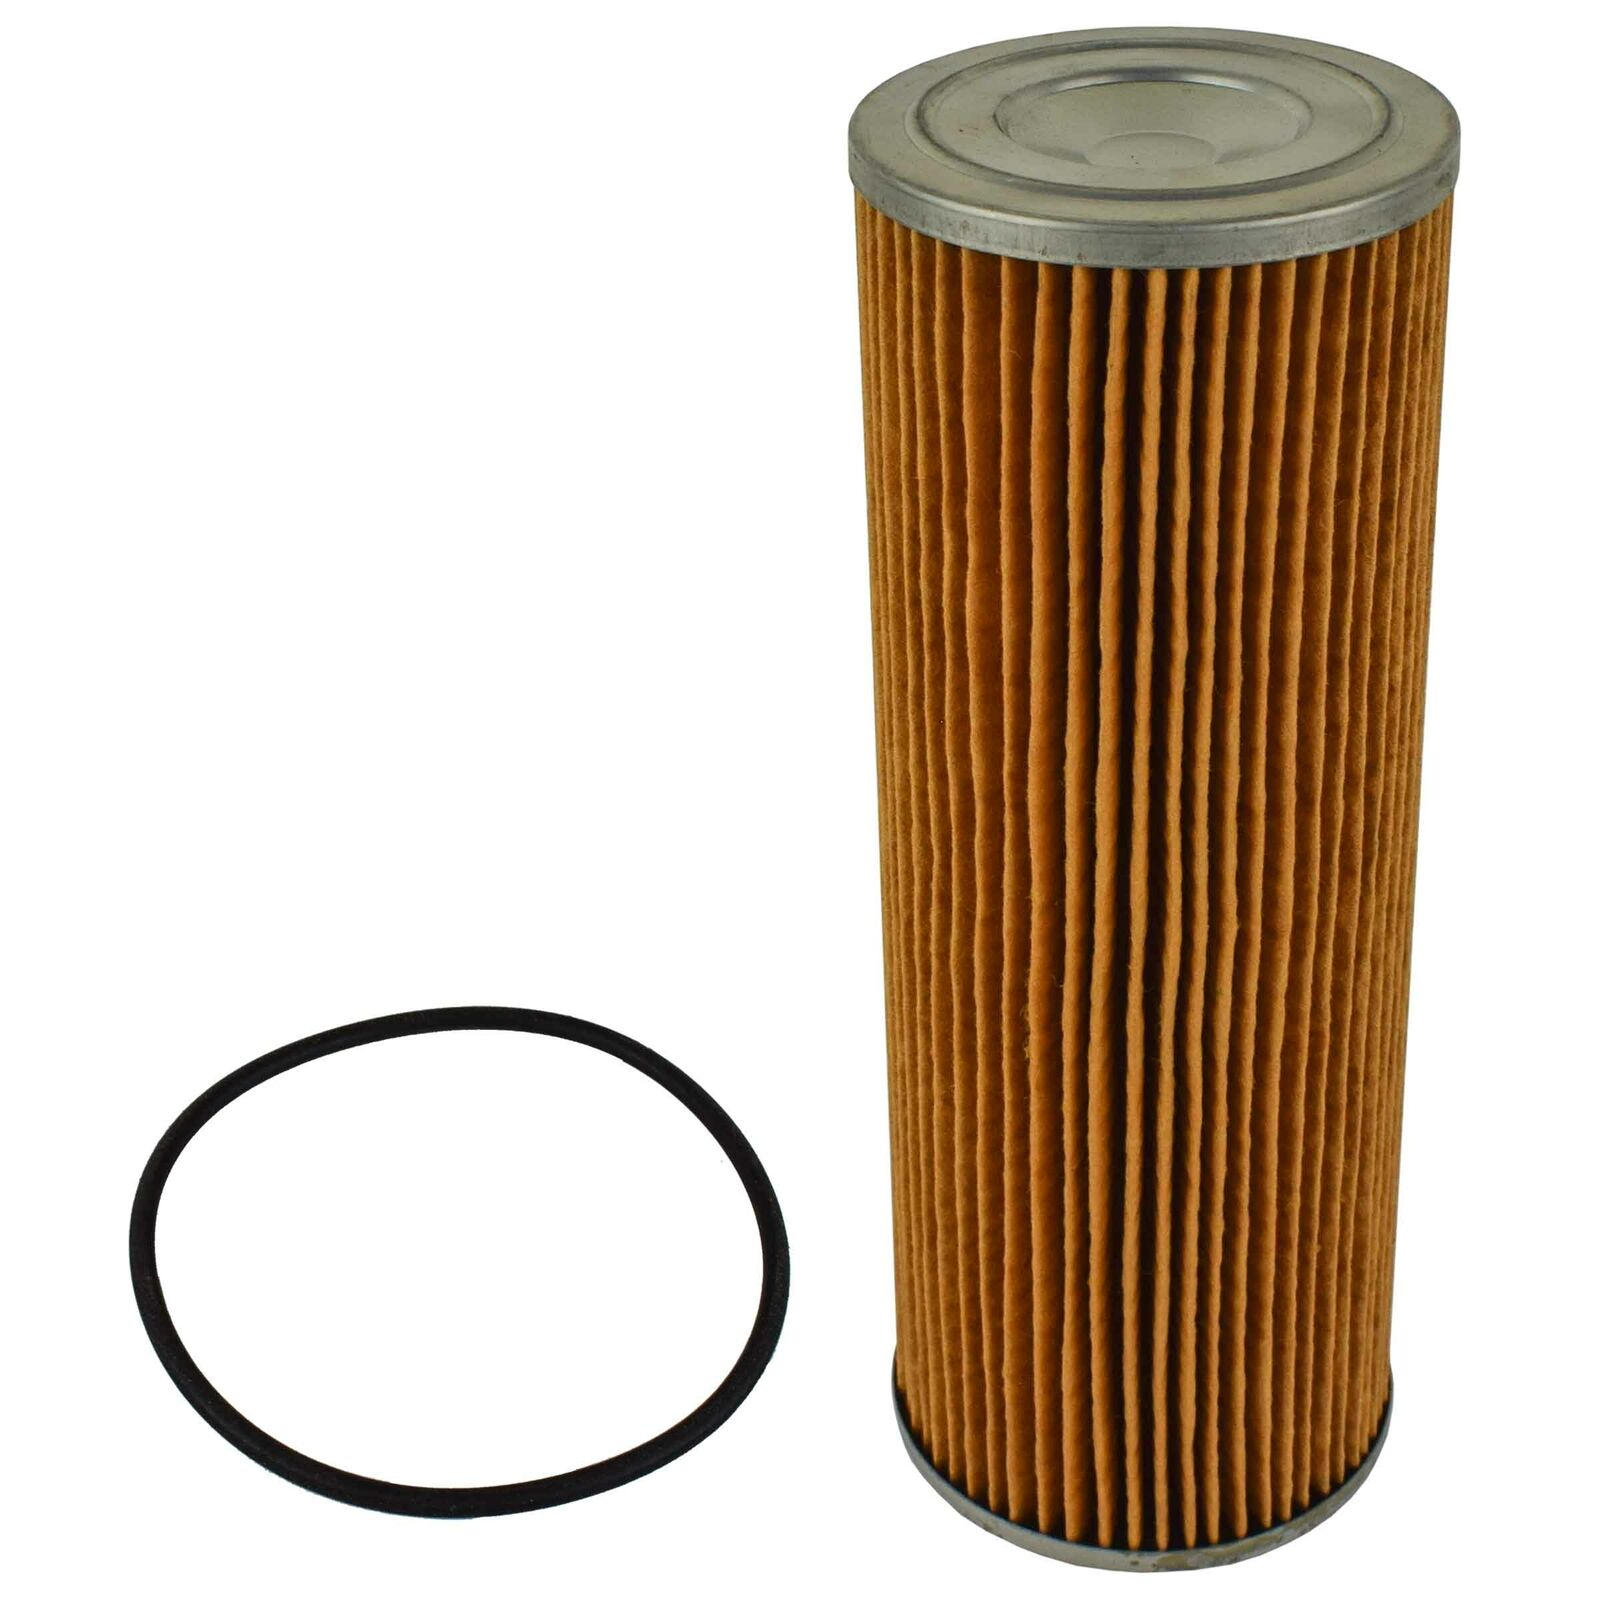 Wix 51760 Cartridge Metal Canister Hydraulic Filter Pack of 1